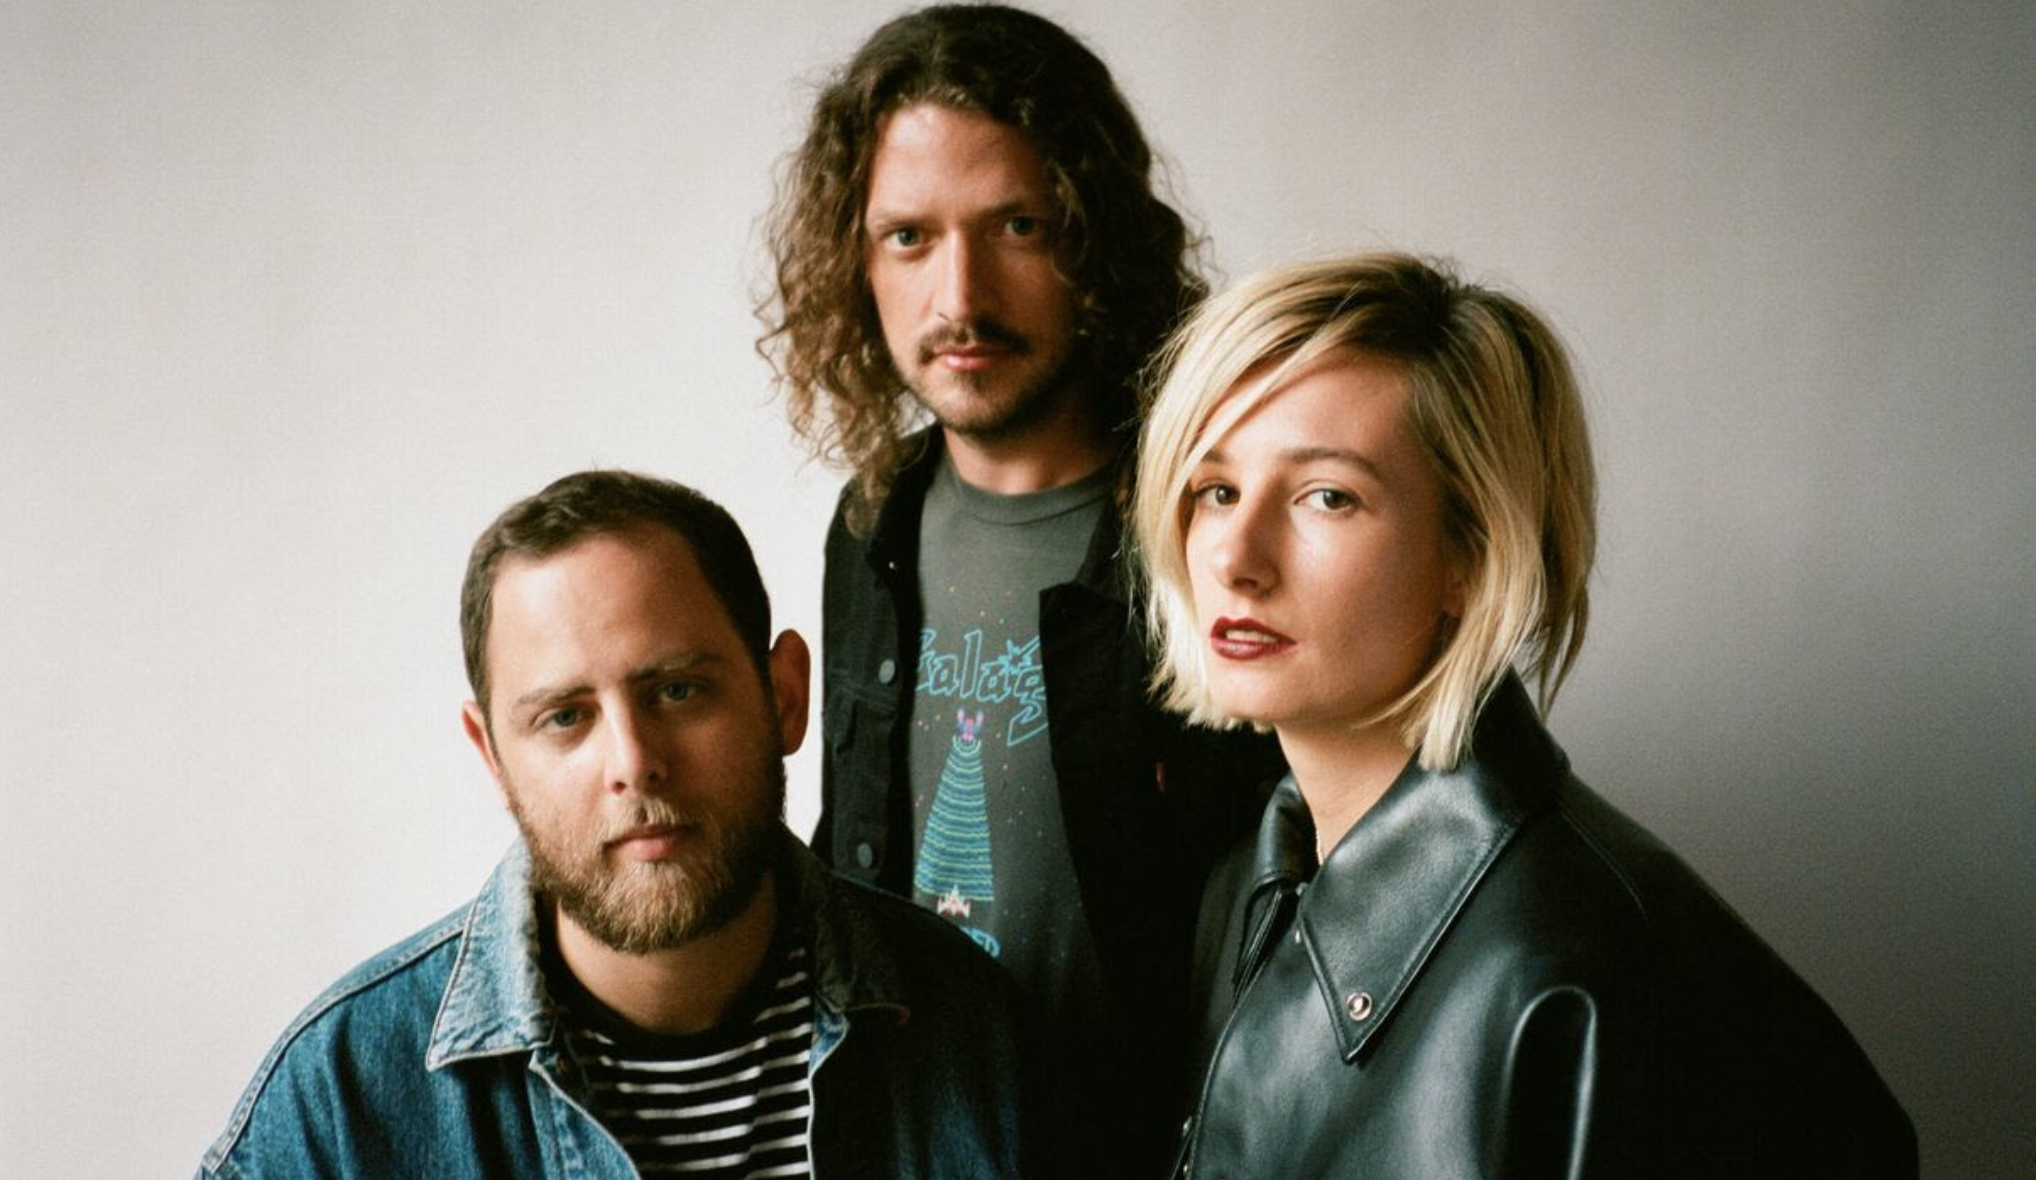 Slothrust confront their adjacent selves in The Pact